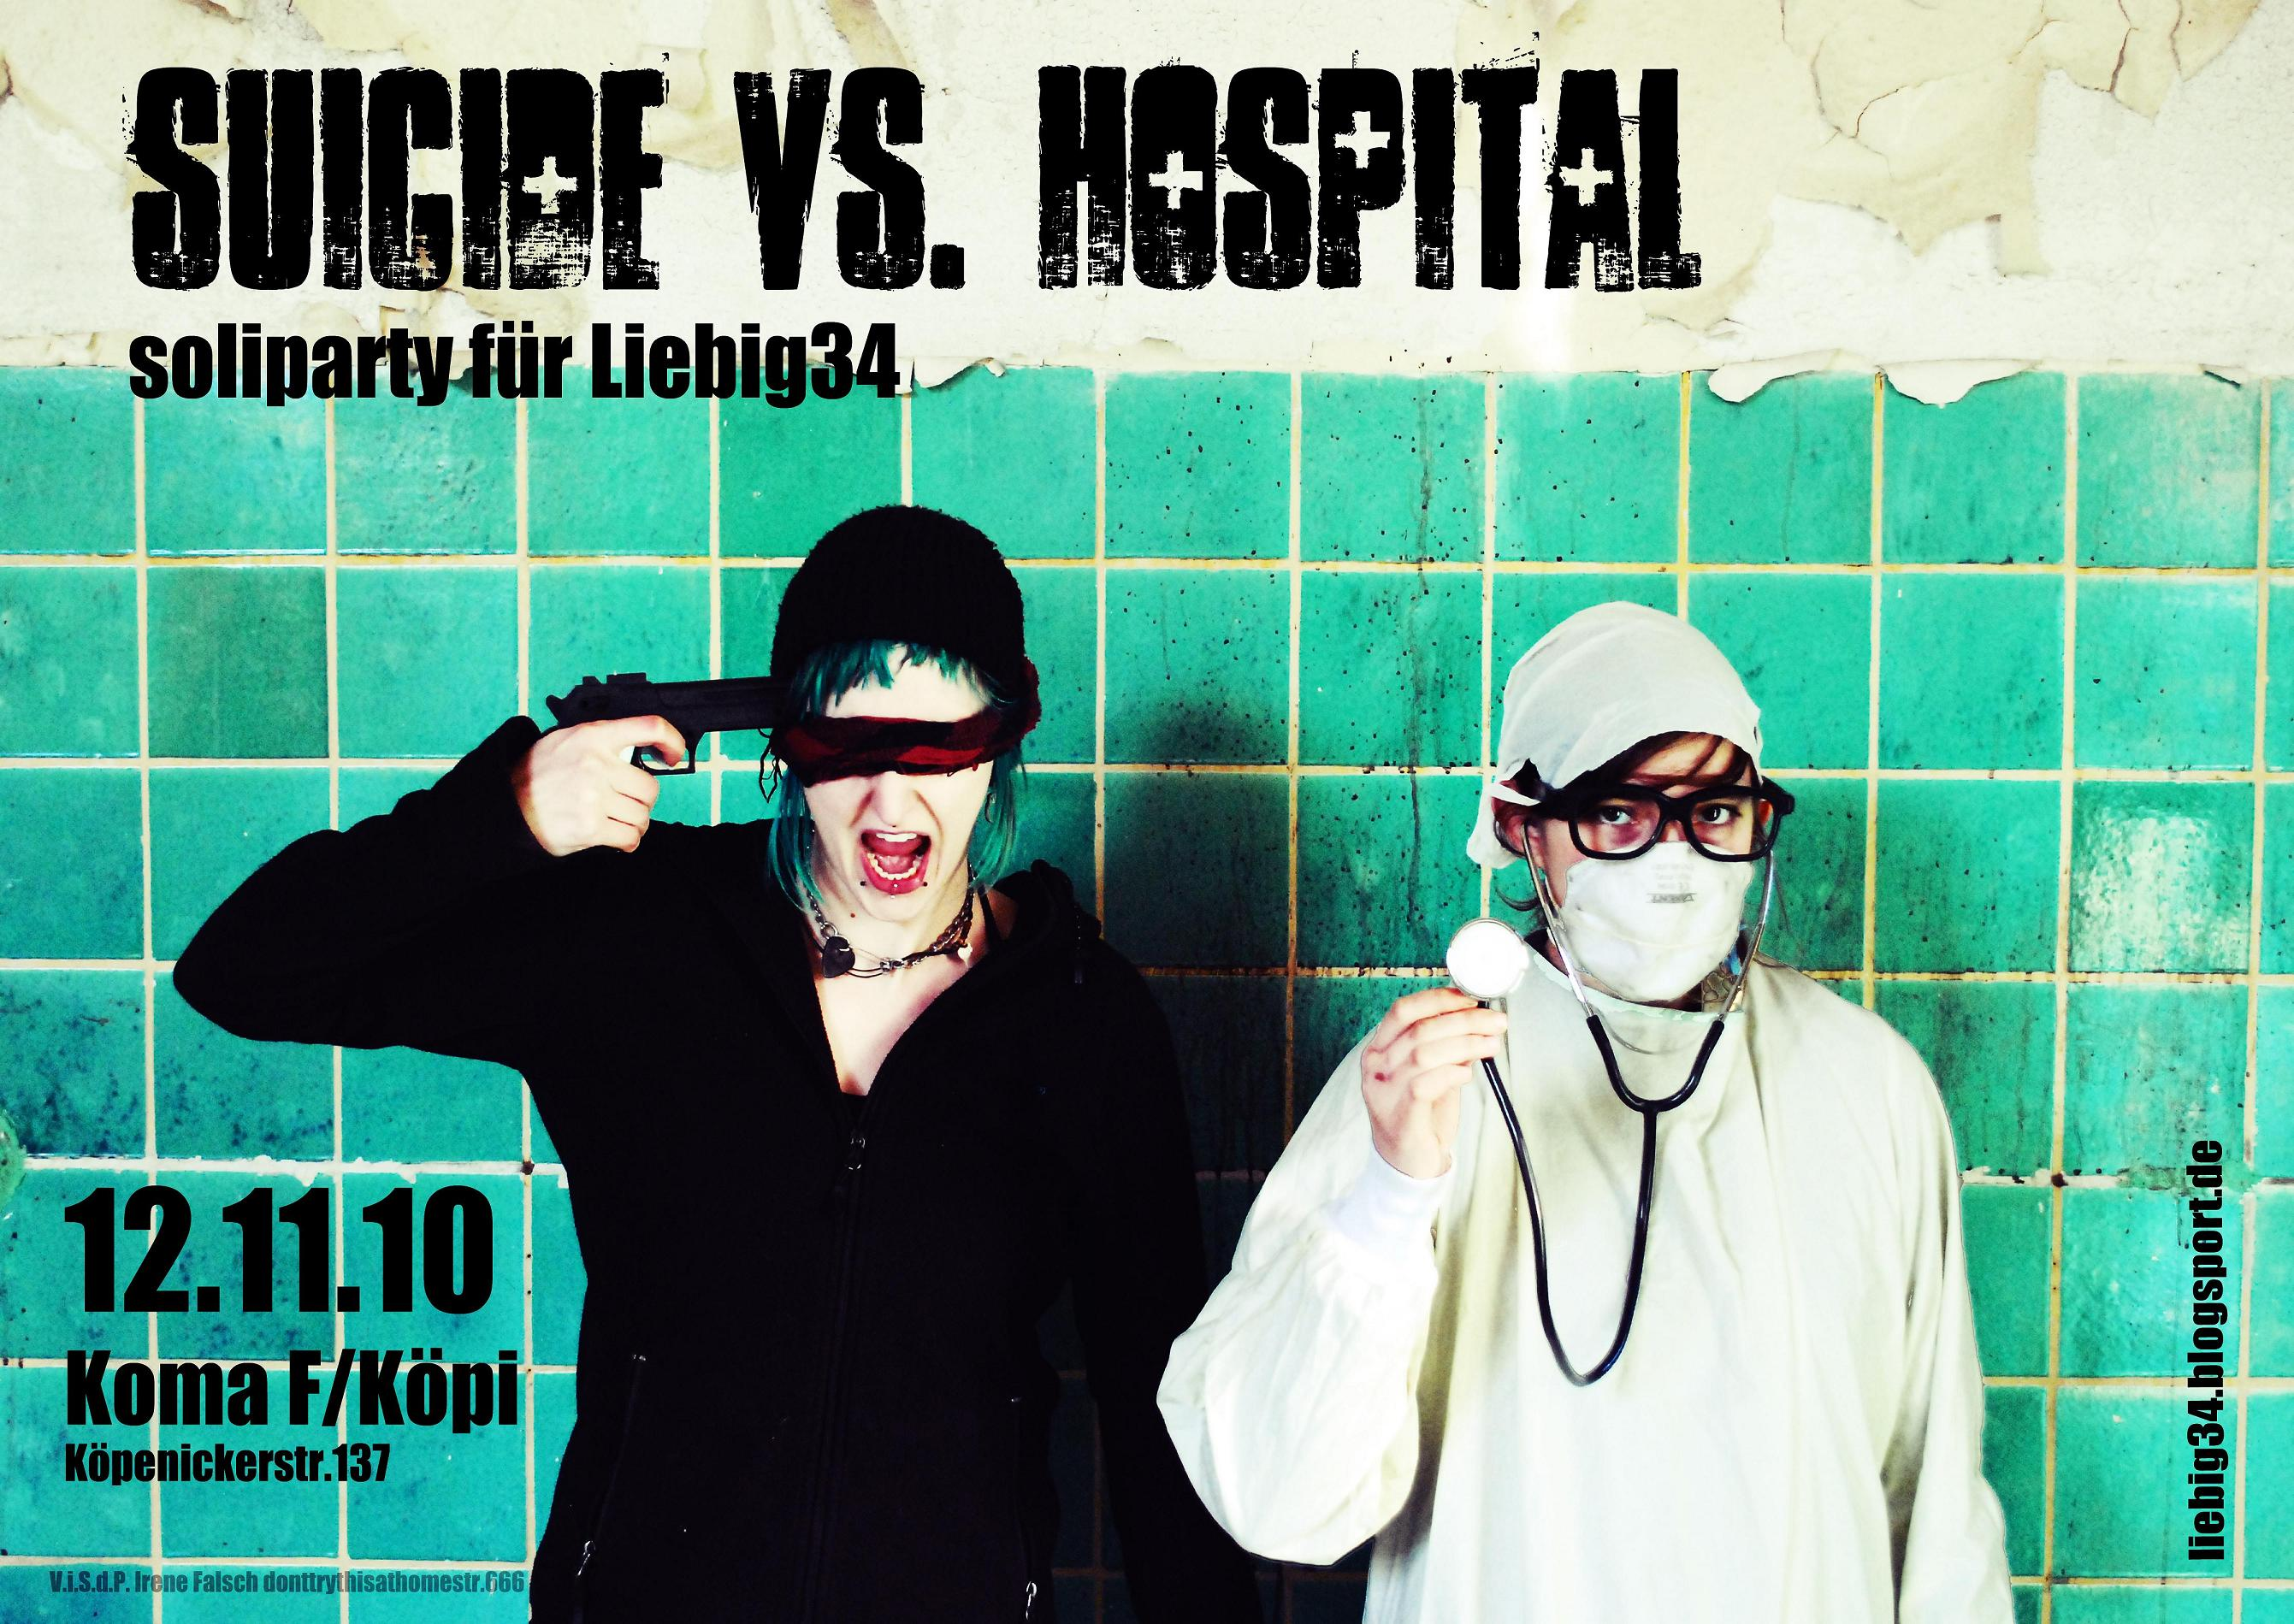 12.11.2010 Soliparty für Liebig 34: SUICIDE vs. HOSPITAL